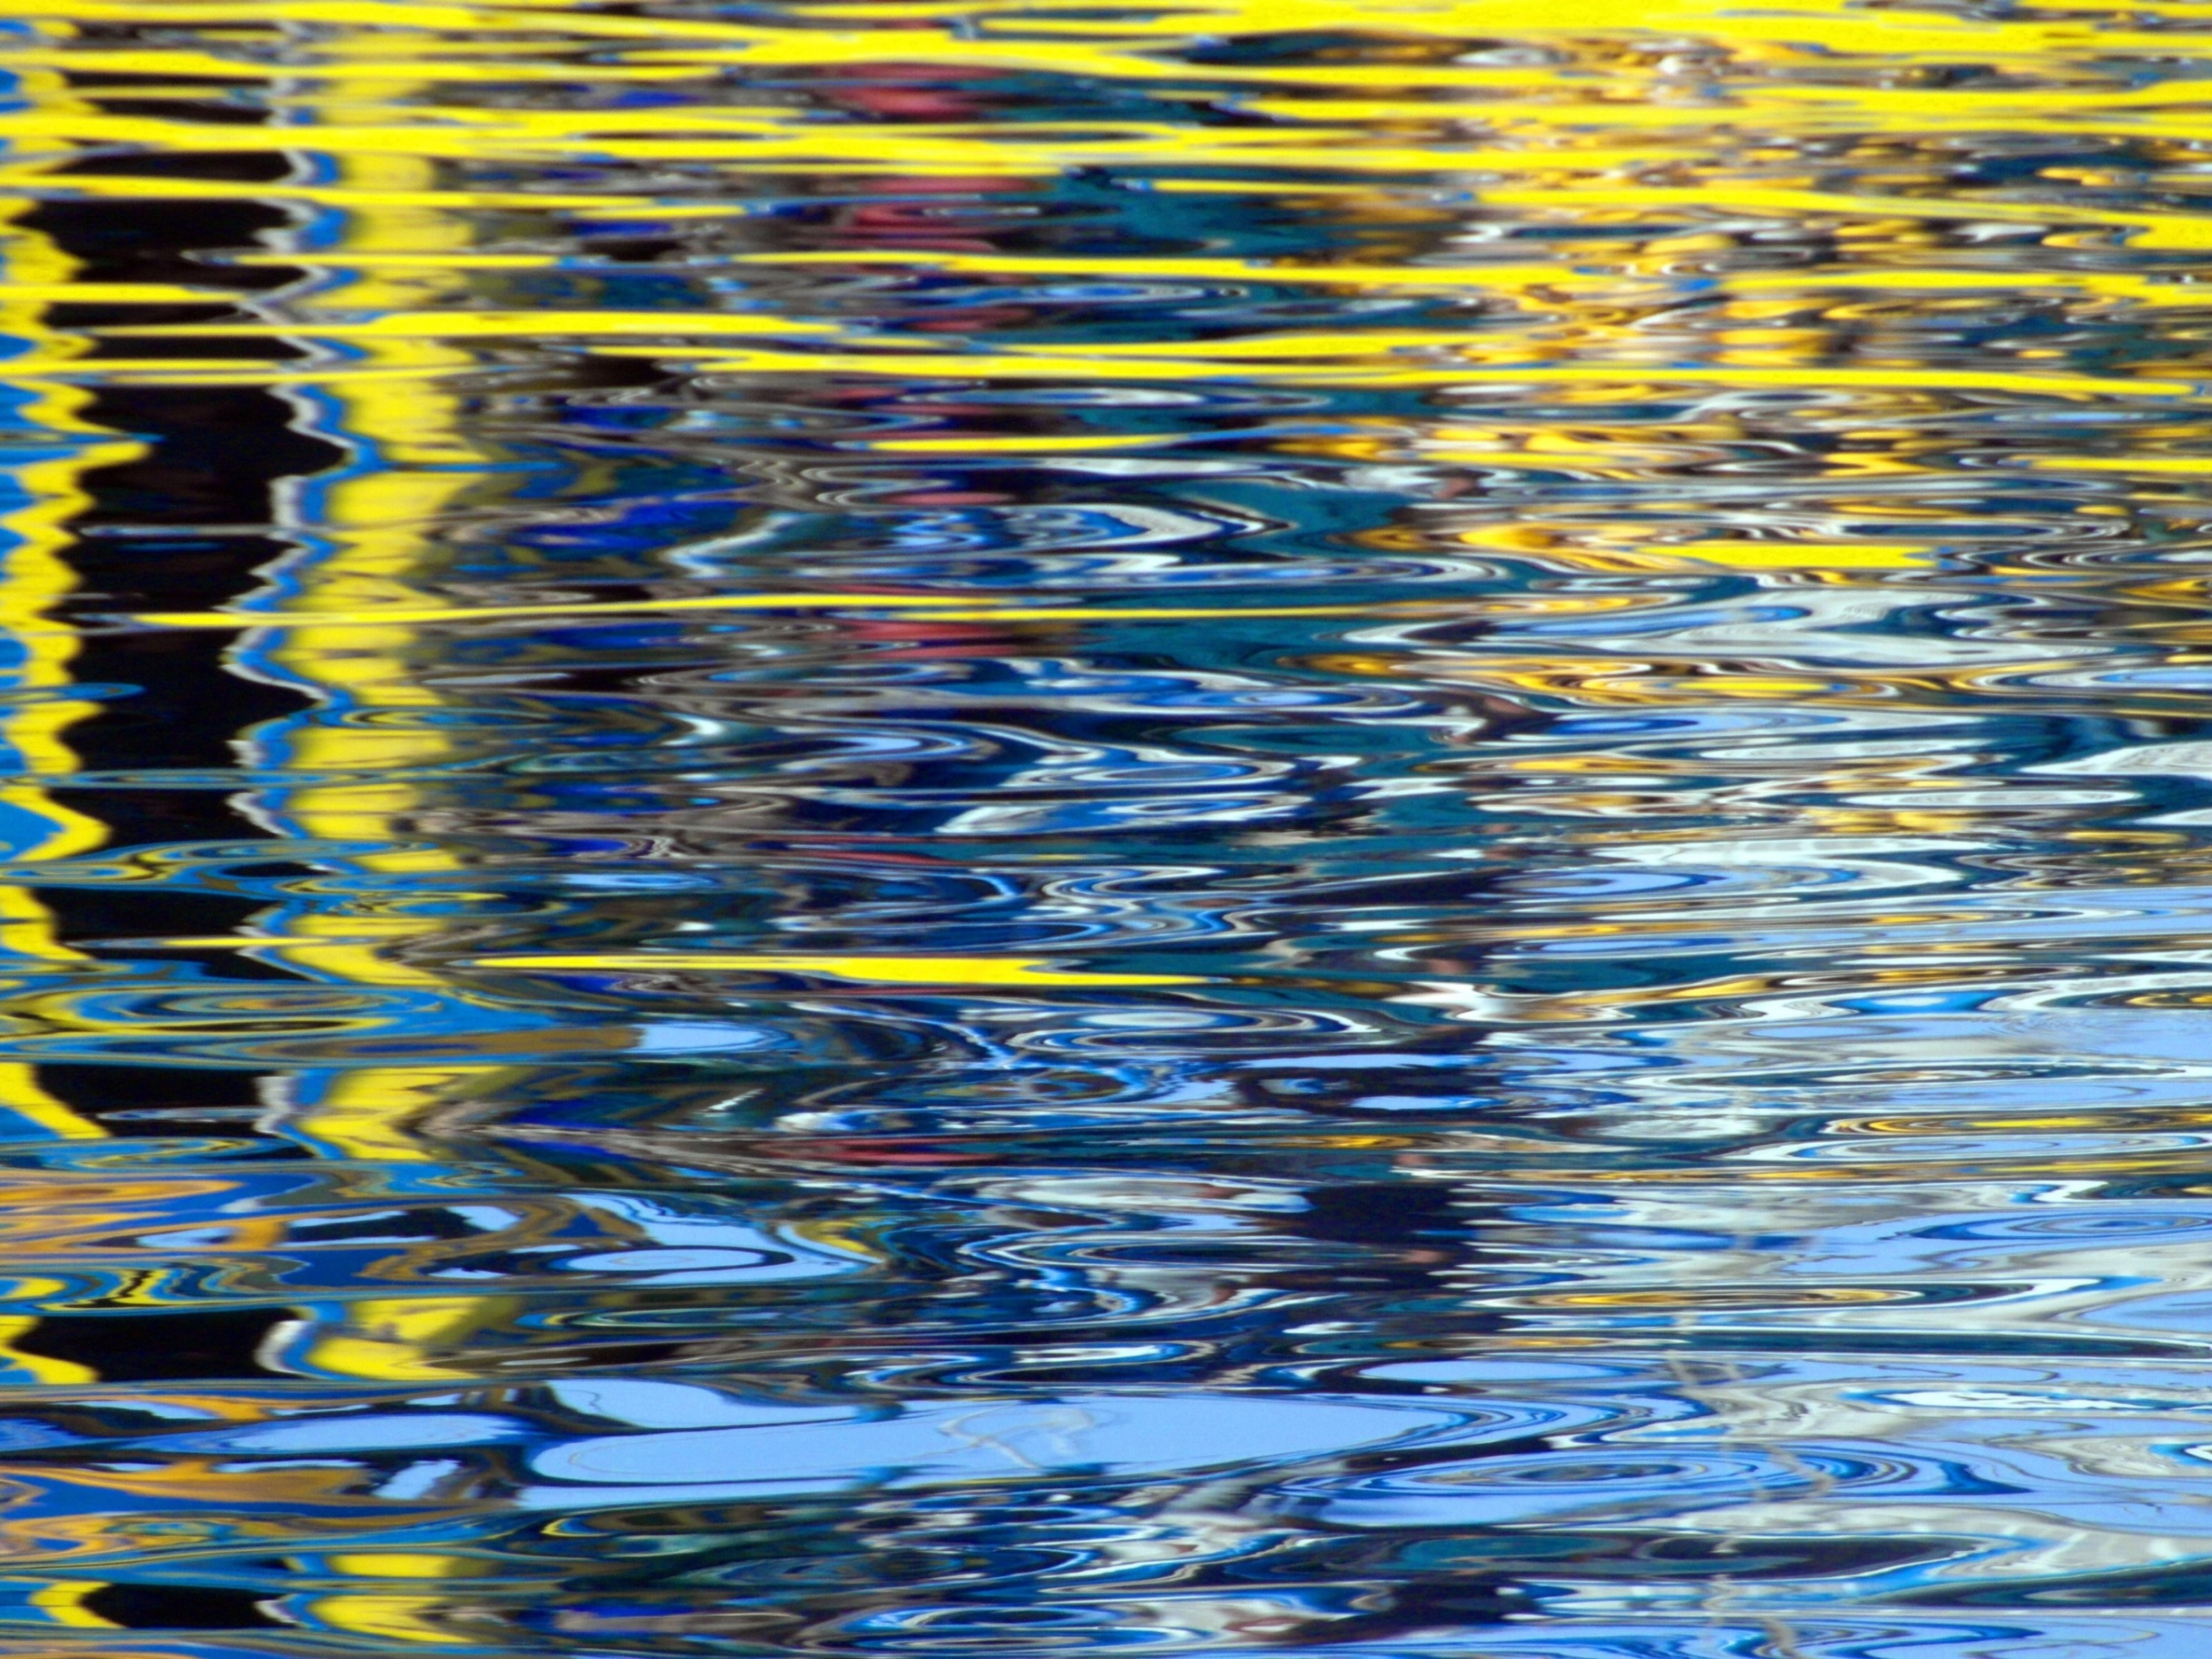 Abstract water ripples photo